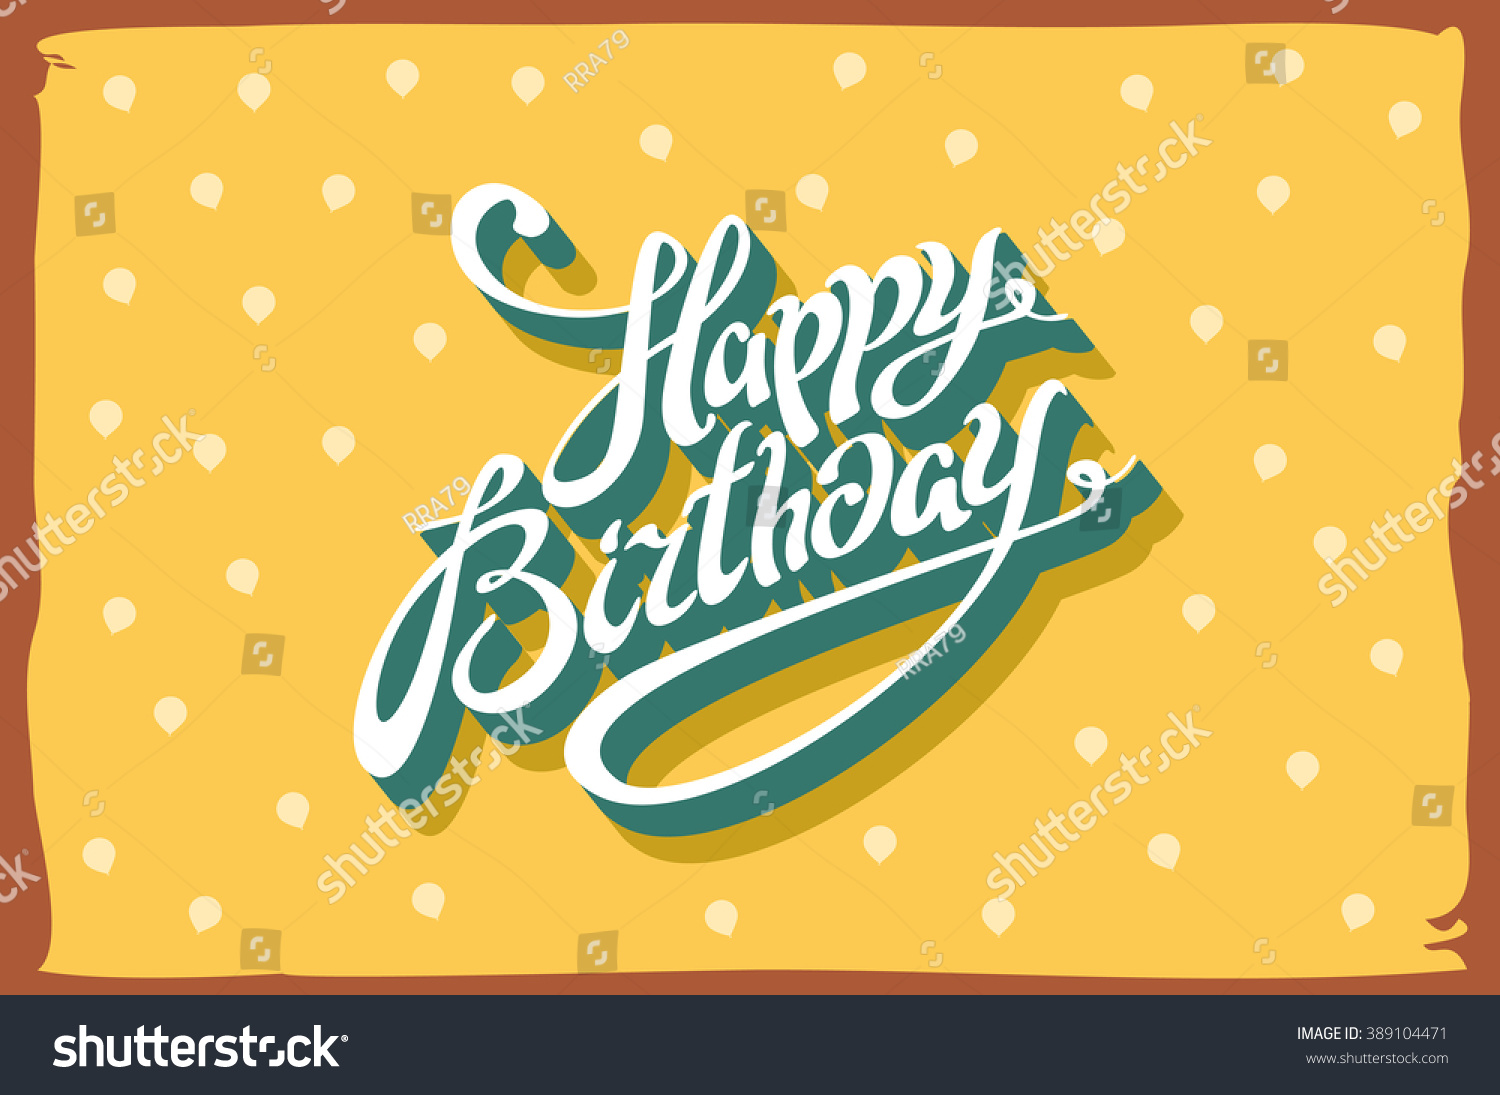 Vintage retro happy birthday card fonts stock vector 2018 vintage retro happy birthday card with fonts grunge frame and chevrons seamless background bookmarktalkfo Choice Image